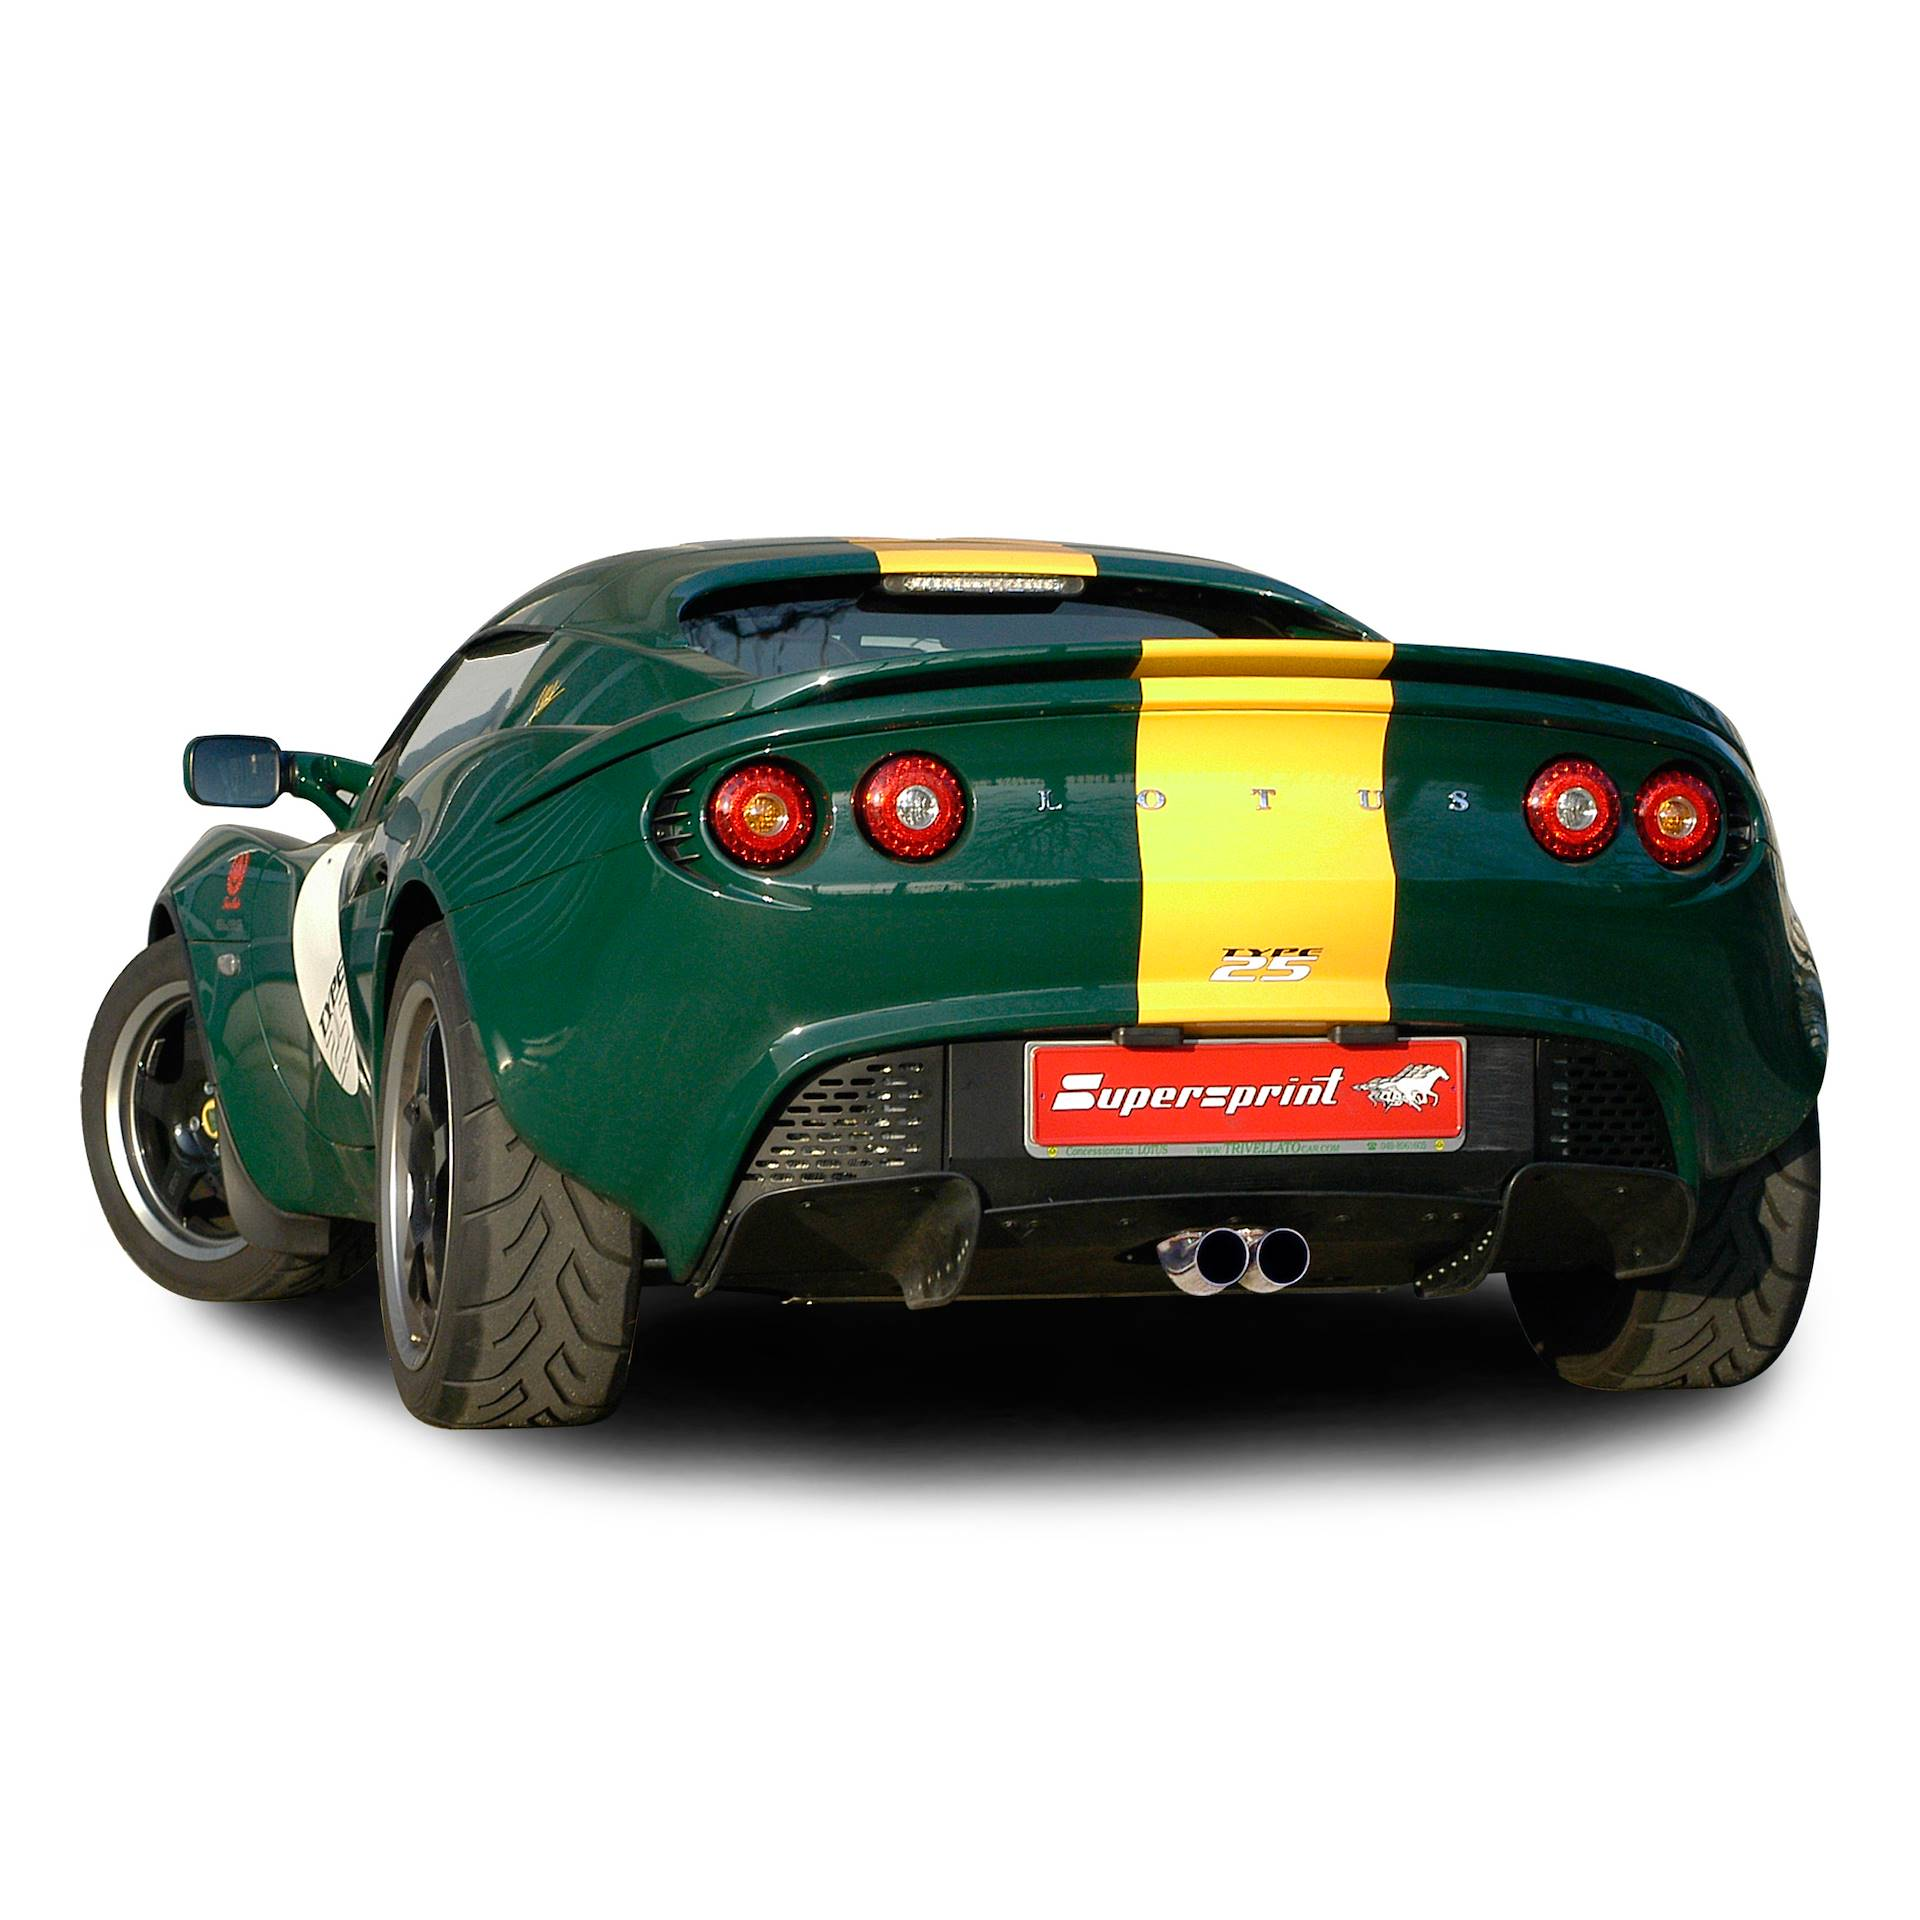 Lotus - LOTUS ELISE Supercharged (220 Hp) '06 ->